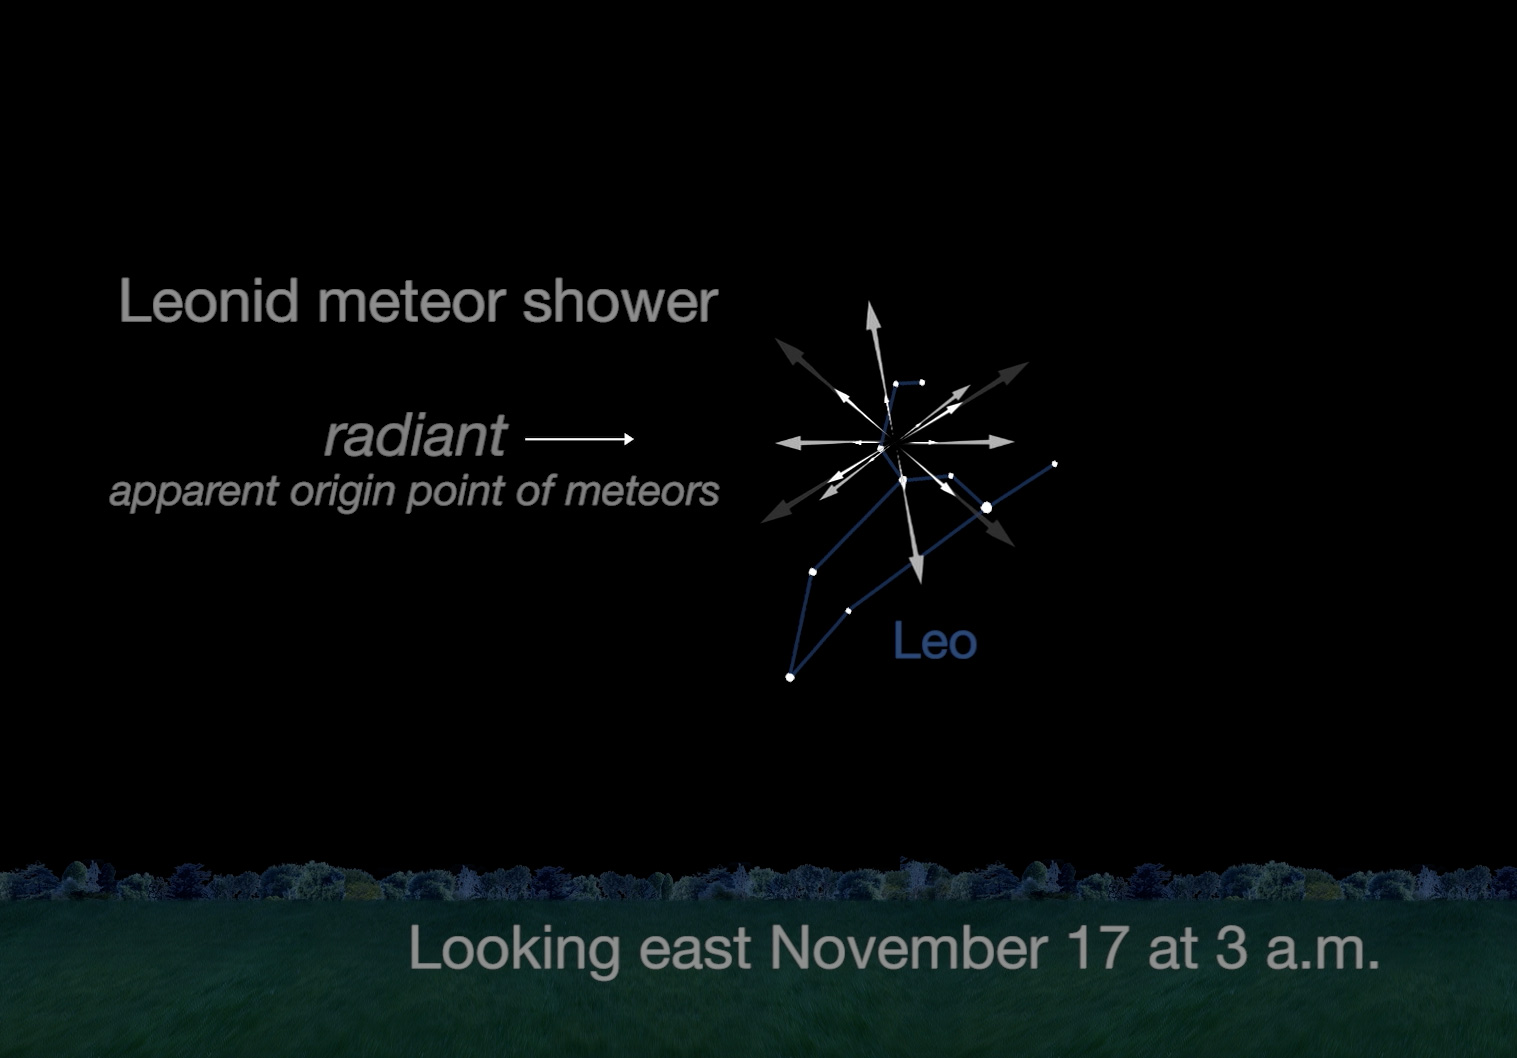 Chart showing Leonid Meteors radiating from constellation Leo.